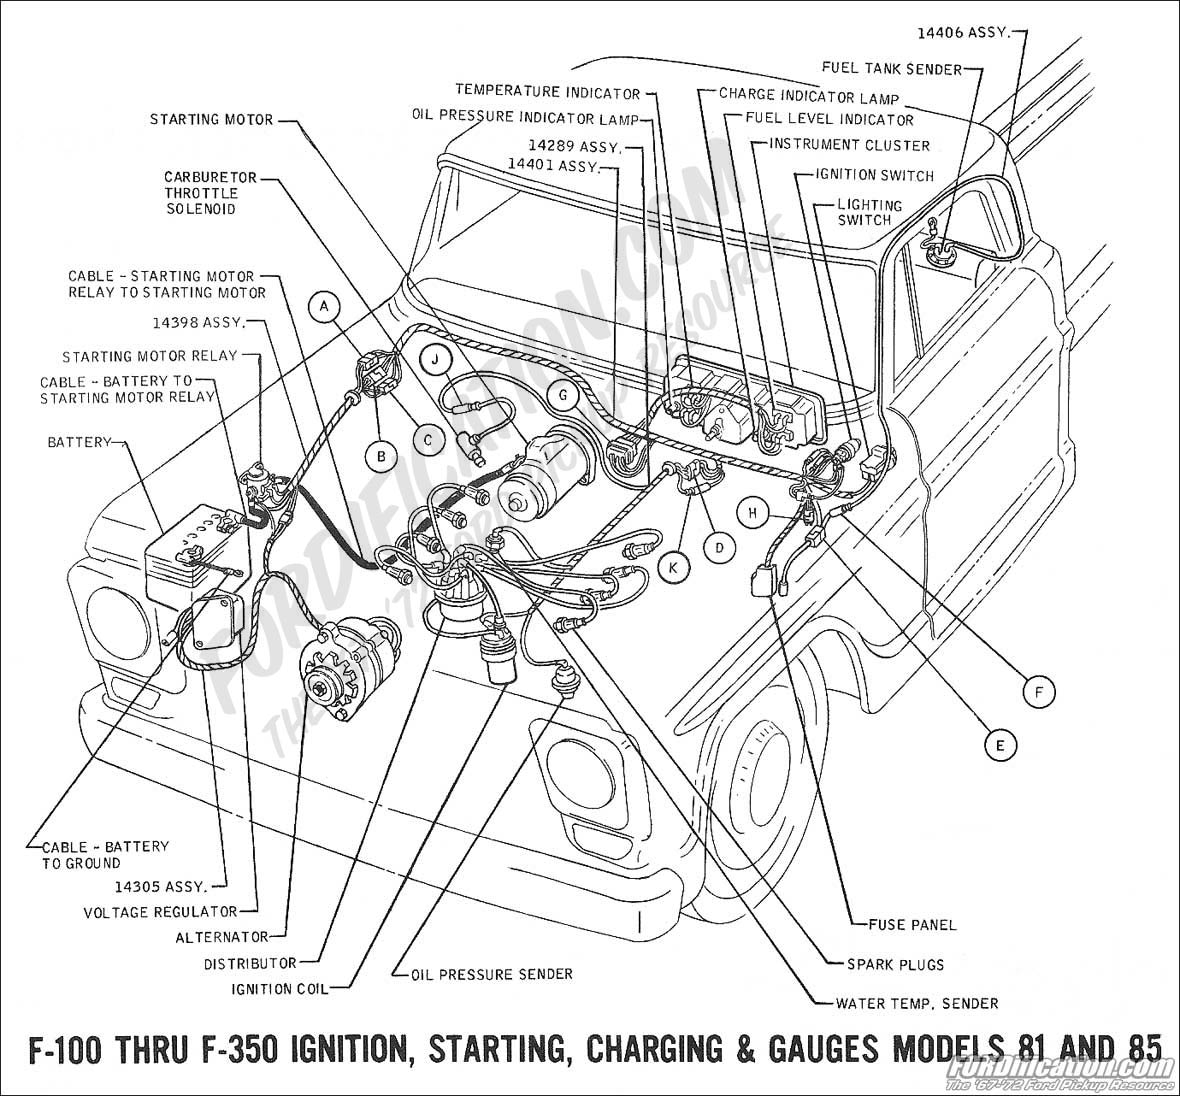 Ford Truck Technical Drawings And Schematics Section H Wiring Relay Diagrams 1969 F 100 Thru 350 Ignition Charging Starting Gauges 01